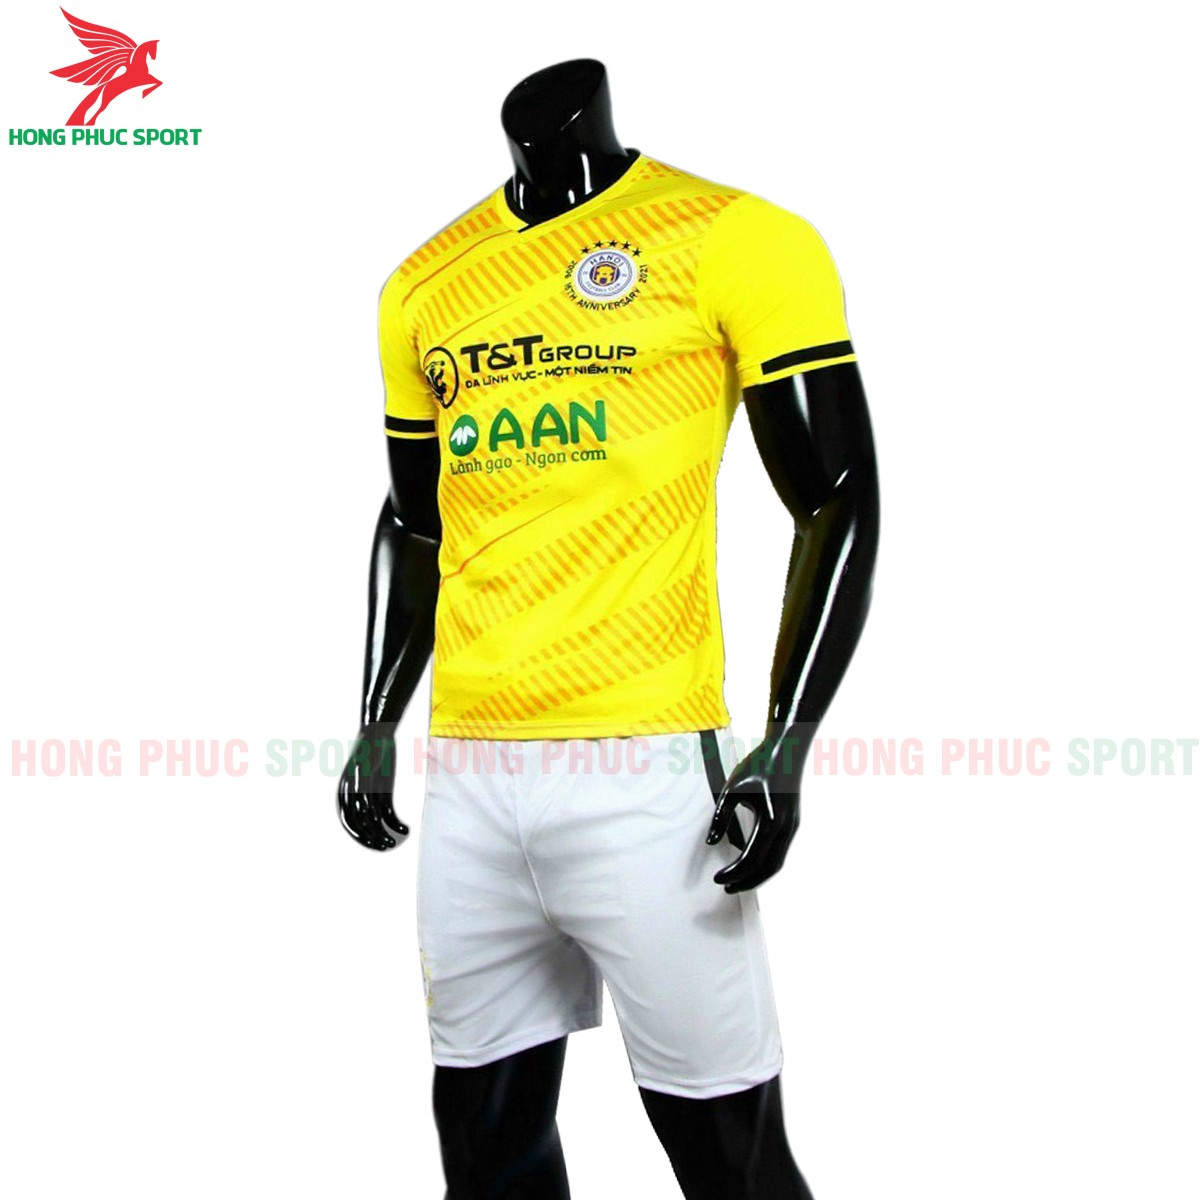 https://cdn.hongphucsport.com/unsafe/s4.shopbay.vn/files/285/ao-bong-da-ha-noi-fc-2021-mau-vang-3-6073f6bcc8cc2.png